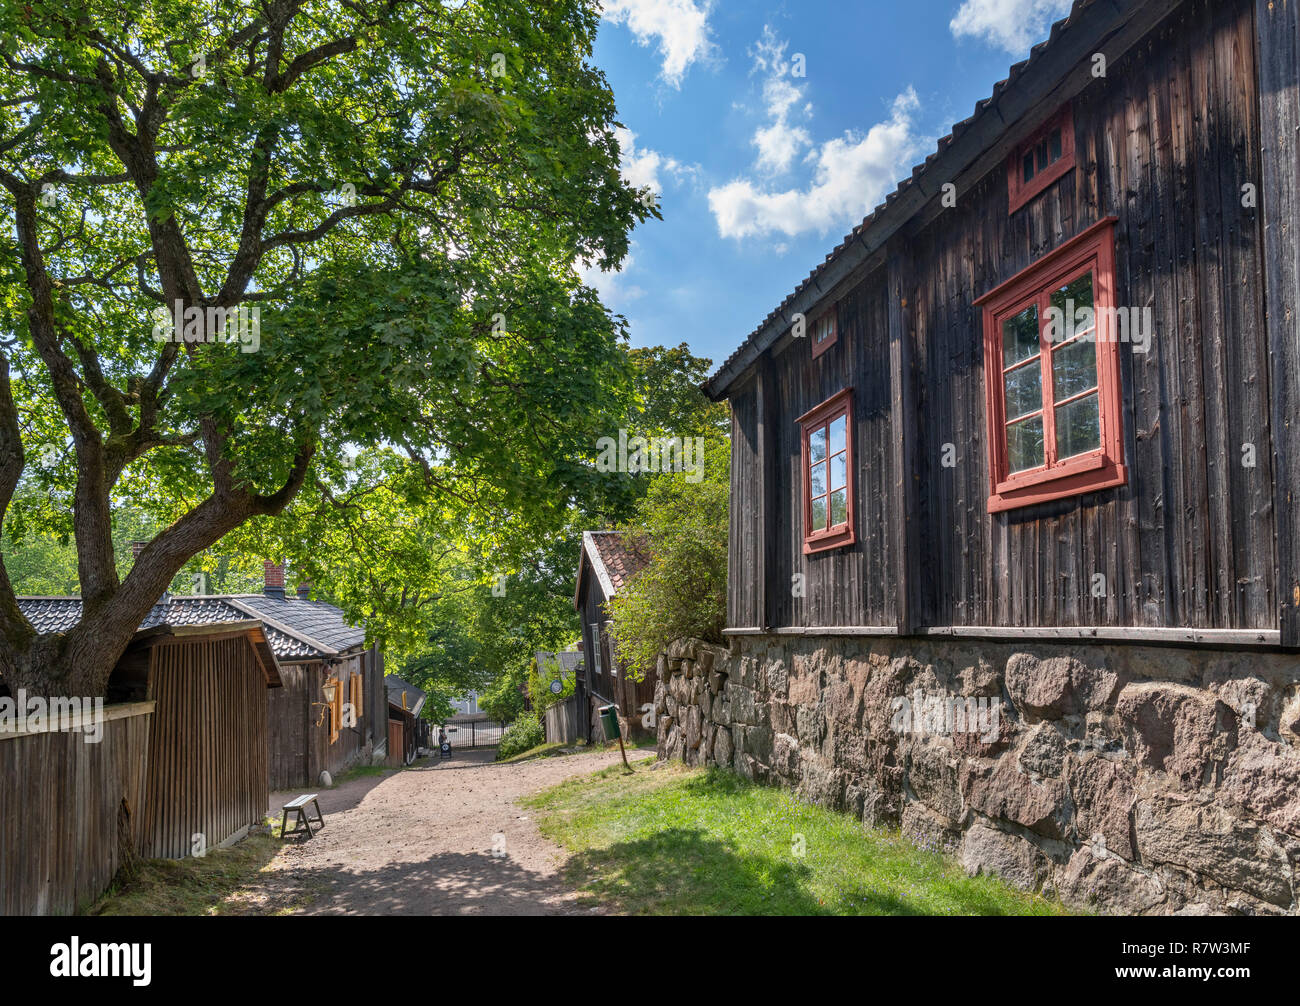 Luostarinmäki Handicrafts Museum, an area of 200 year old wooden buildings which survived the fire of 1827, Turku, Finland - Stock Image